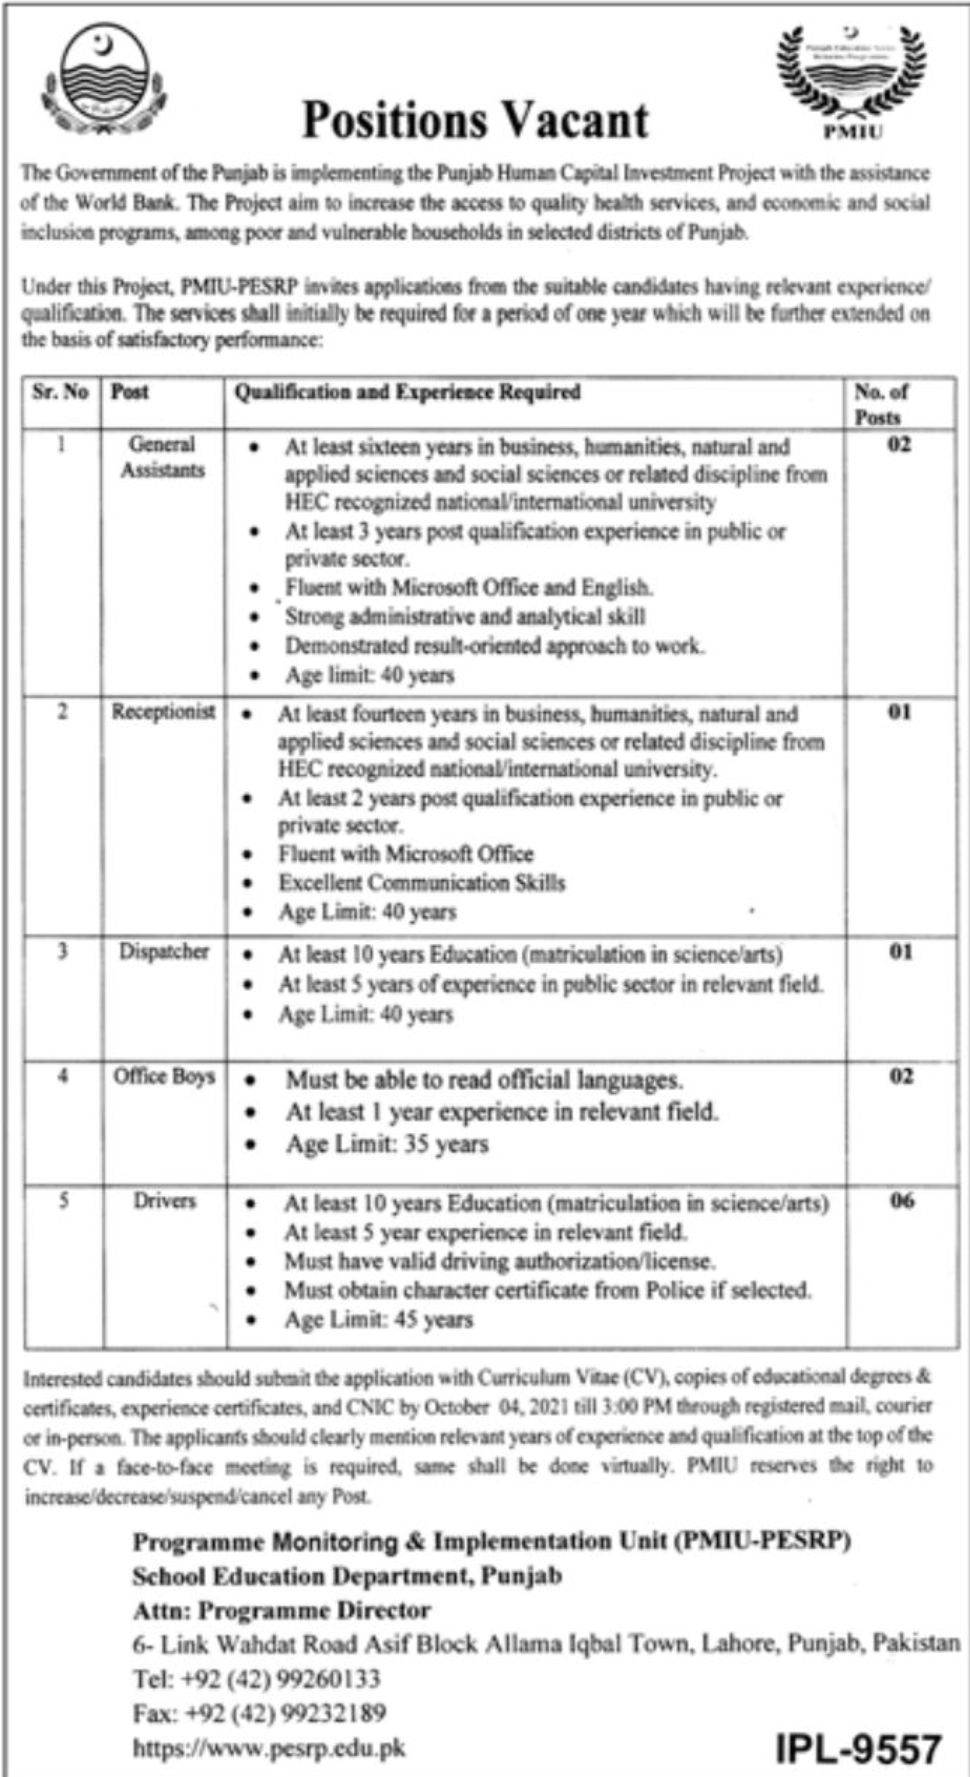 The Government of the Punjab Programme Monitoring & Implementation Unit Vacancies 2021 – Dailyjobs.pk 3